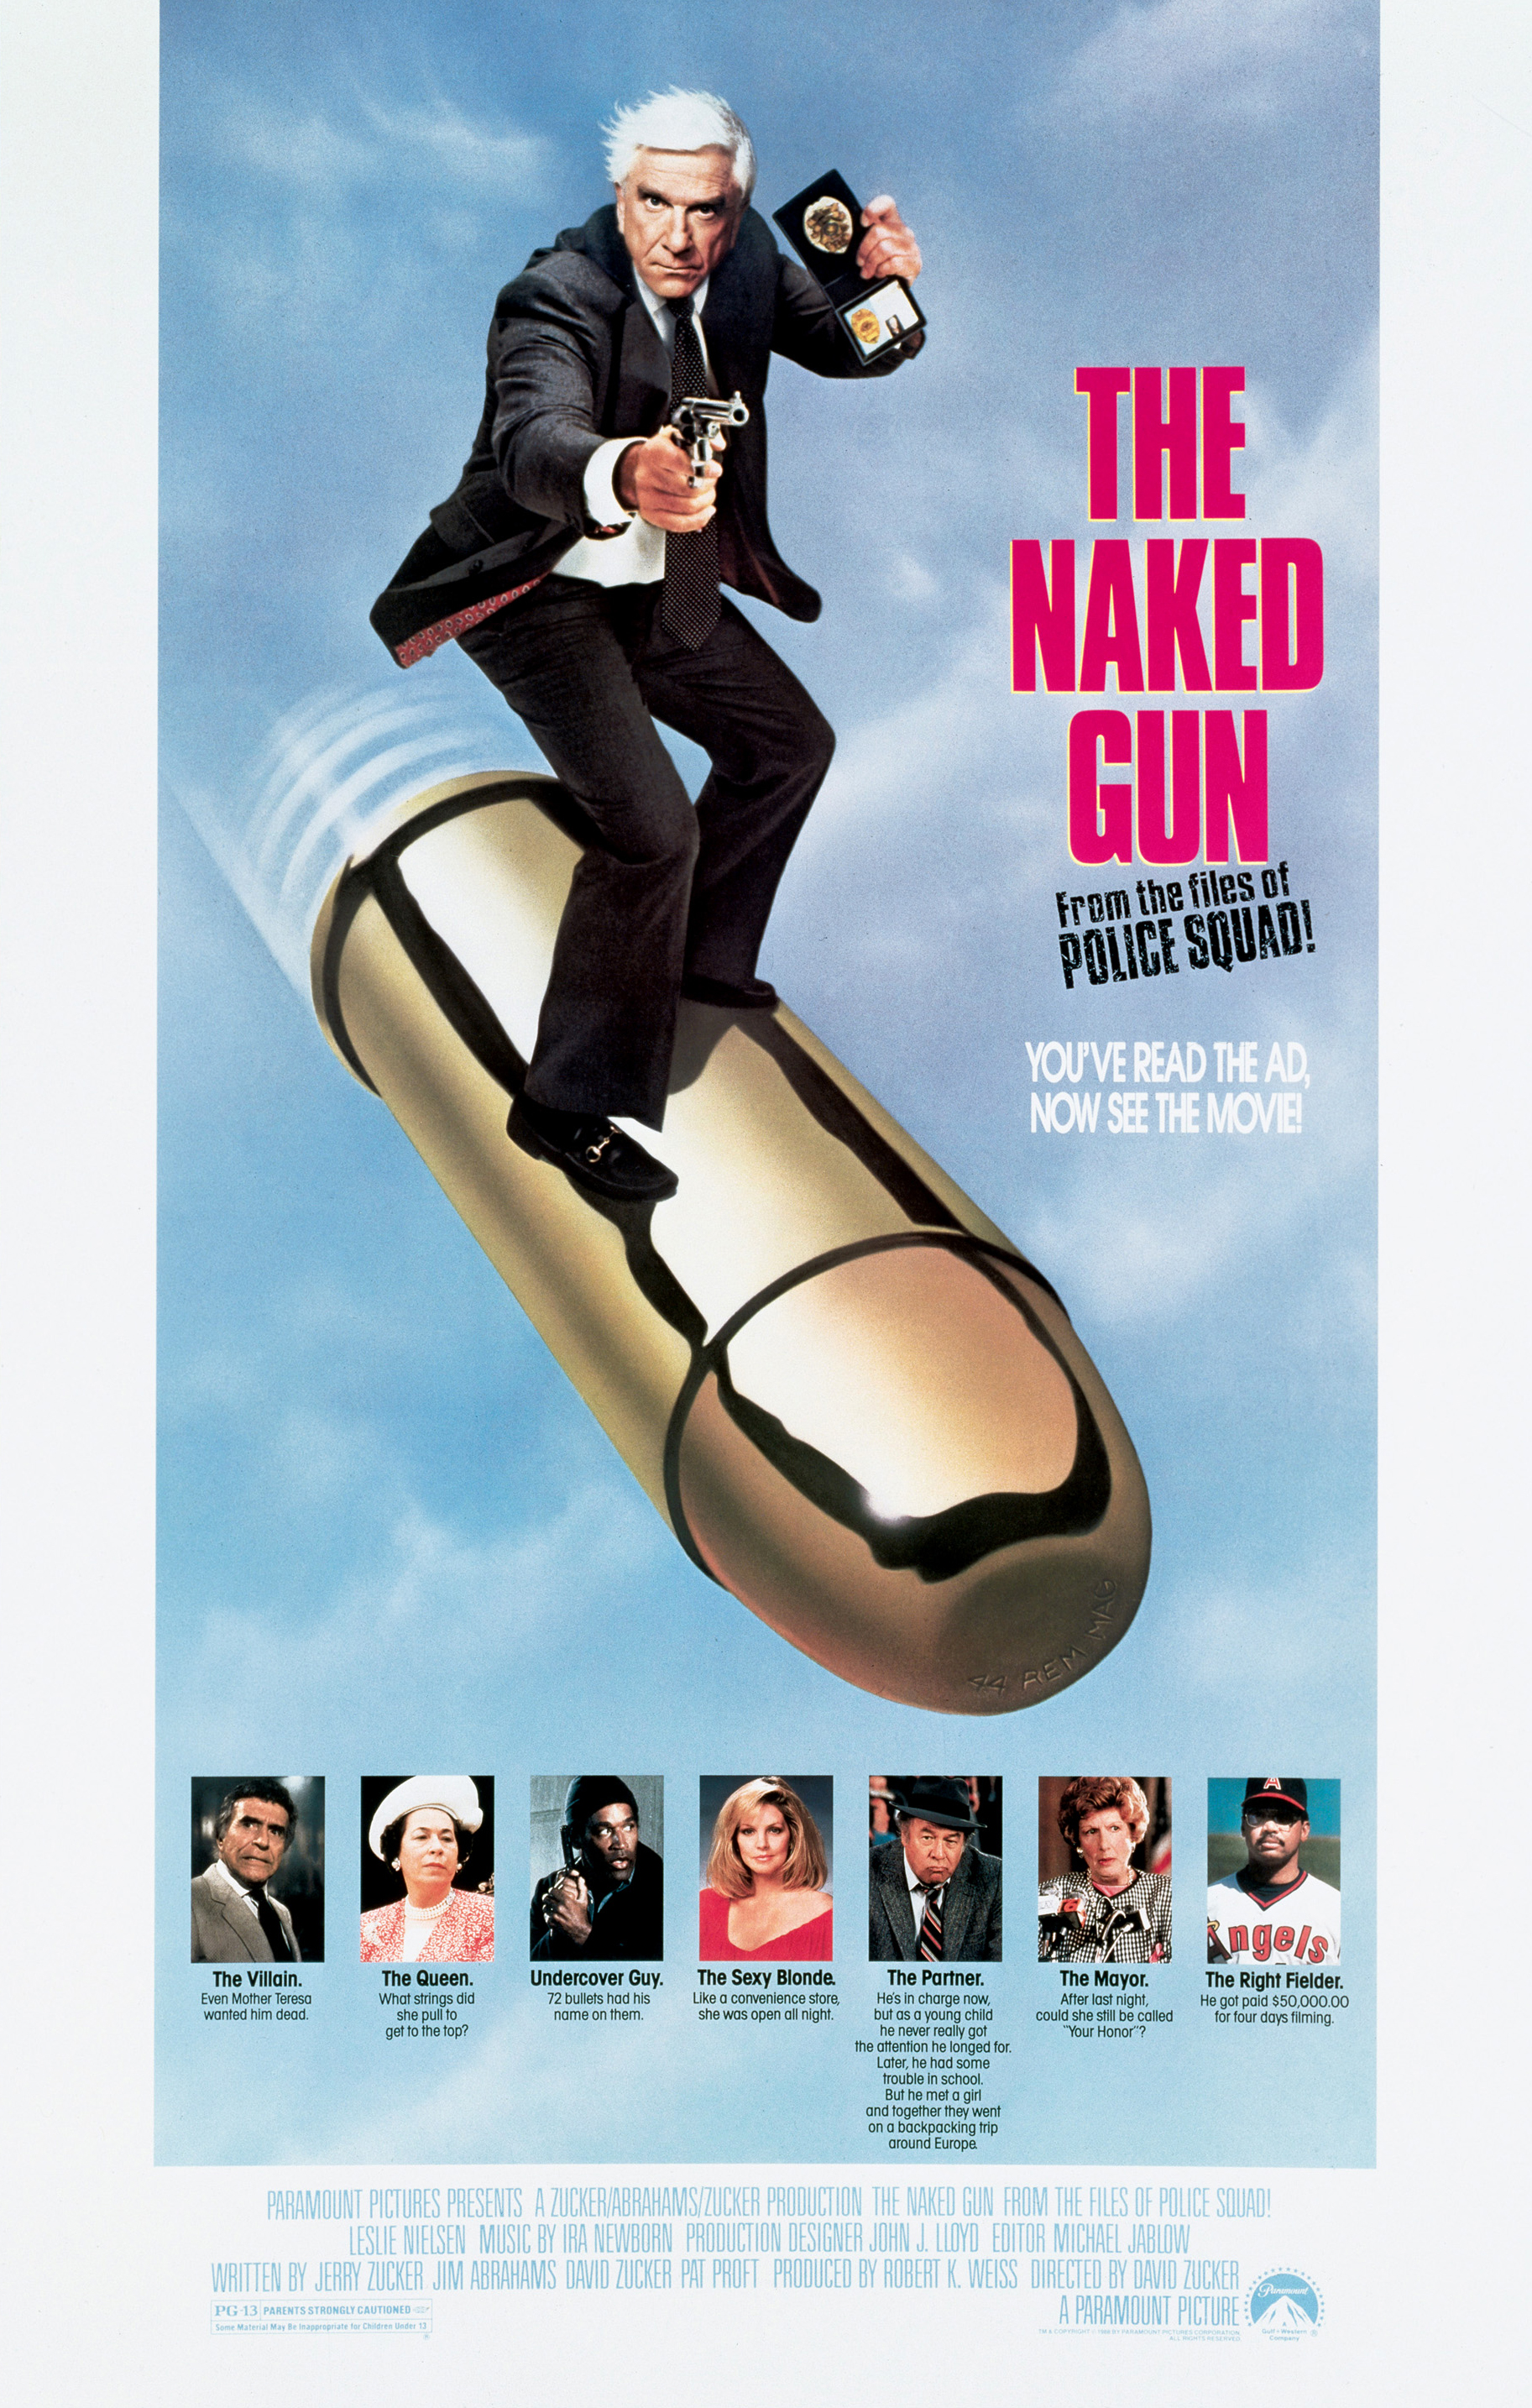 The Naked Gun poster